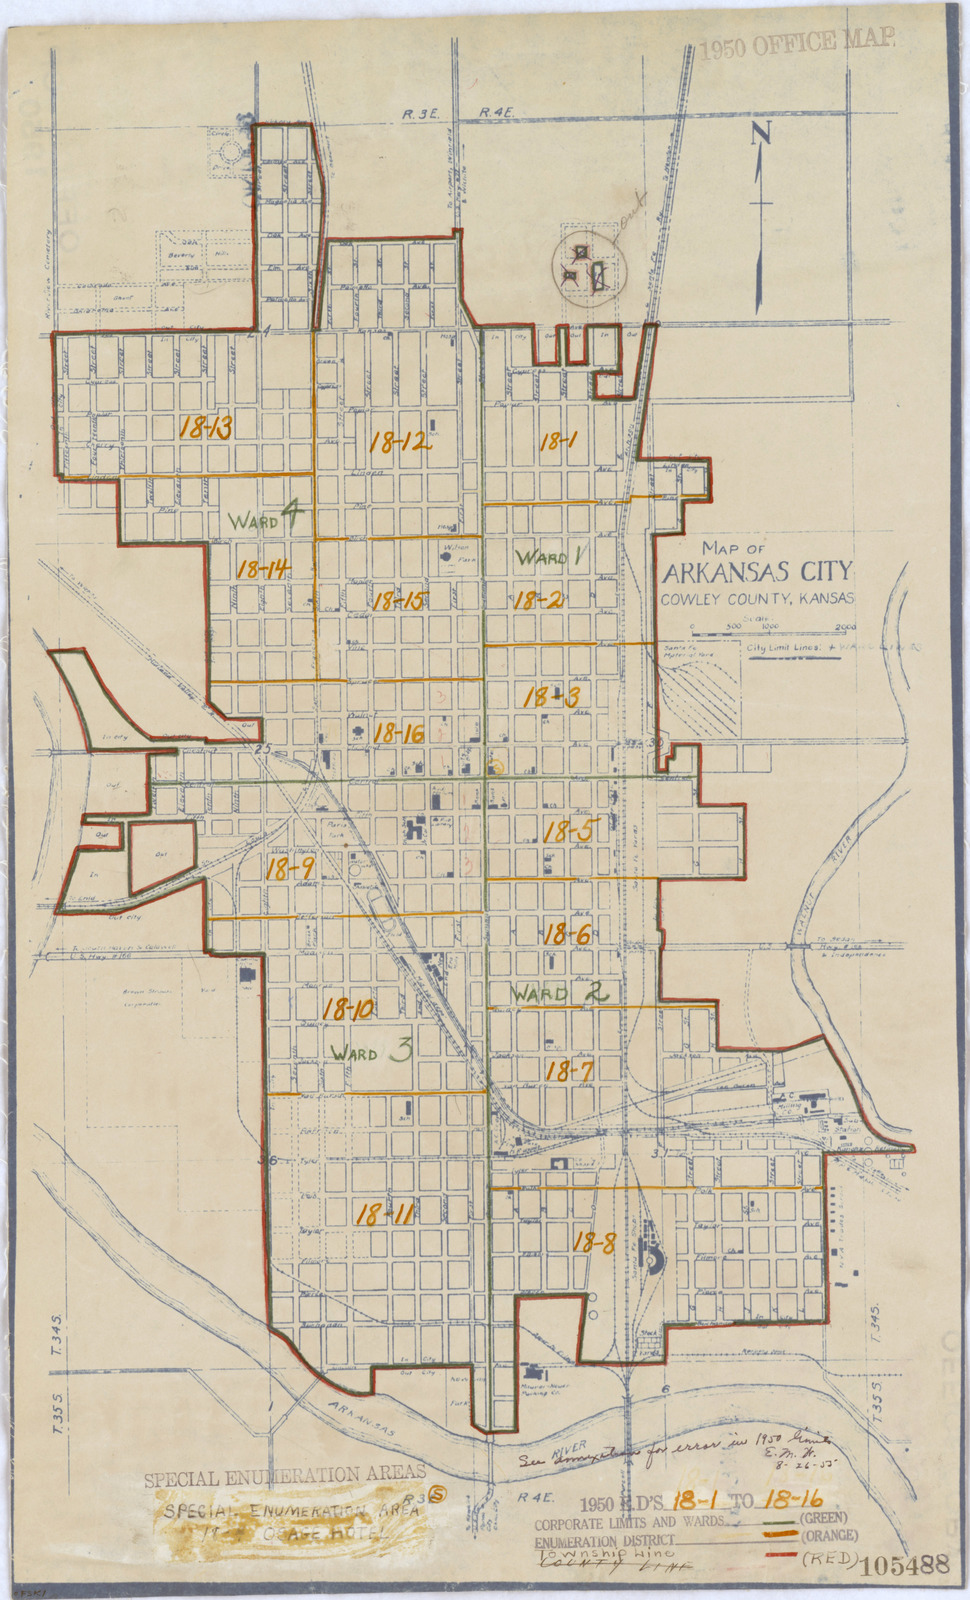 1950 Census Enumeration District Maps - Kansas (KS) - Cowley County on milton ma on us map, houston tx on us map, lexington ky on us map, meridian ms on us map, columbia md on us map, independence mo on us map, lancaster pa on us map, flagstaff az on us map, longview tx on us map, lincoln ne on us map, lawton ok on us map, louisville ky on us map, memphis tn on us map, los angeles ca on us map, las vegas nv on us map, jackson ms on us map, allentown pa on us map, fargo nd on us map, joplin mo on us map, knoxville tn on us map,